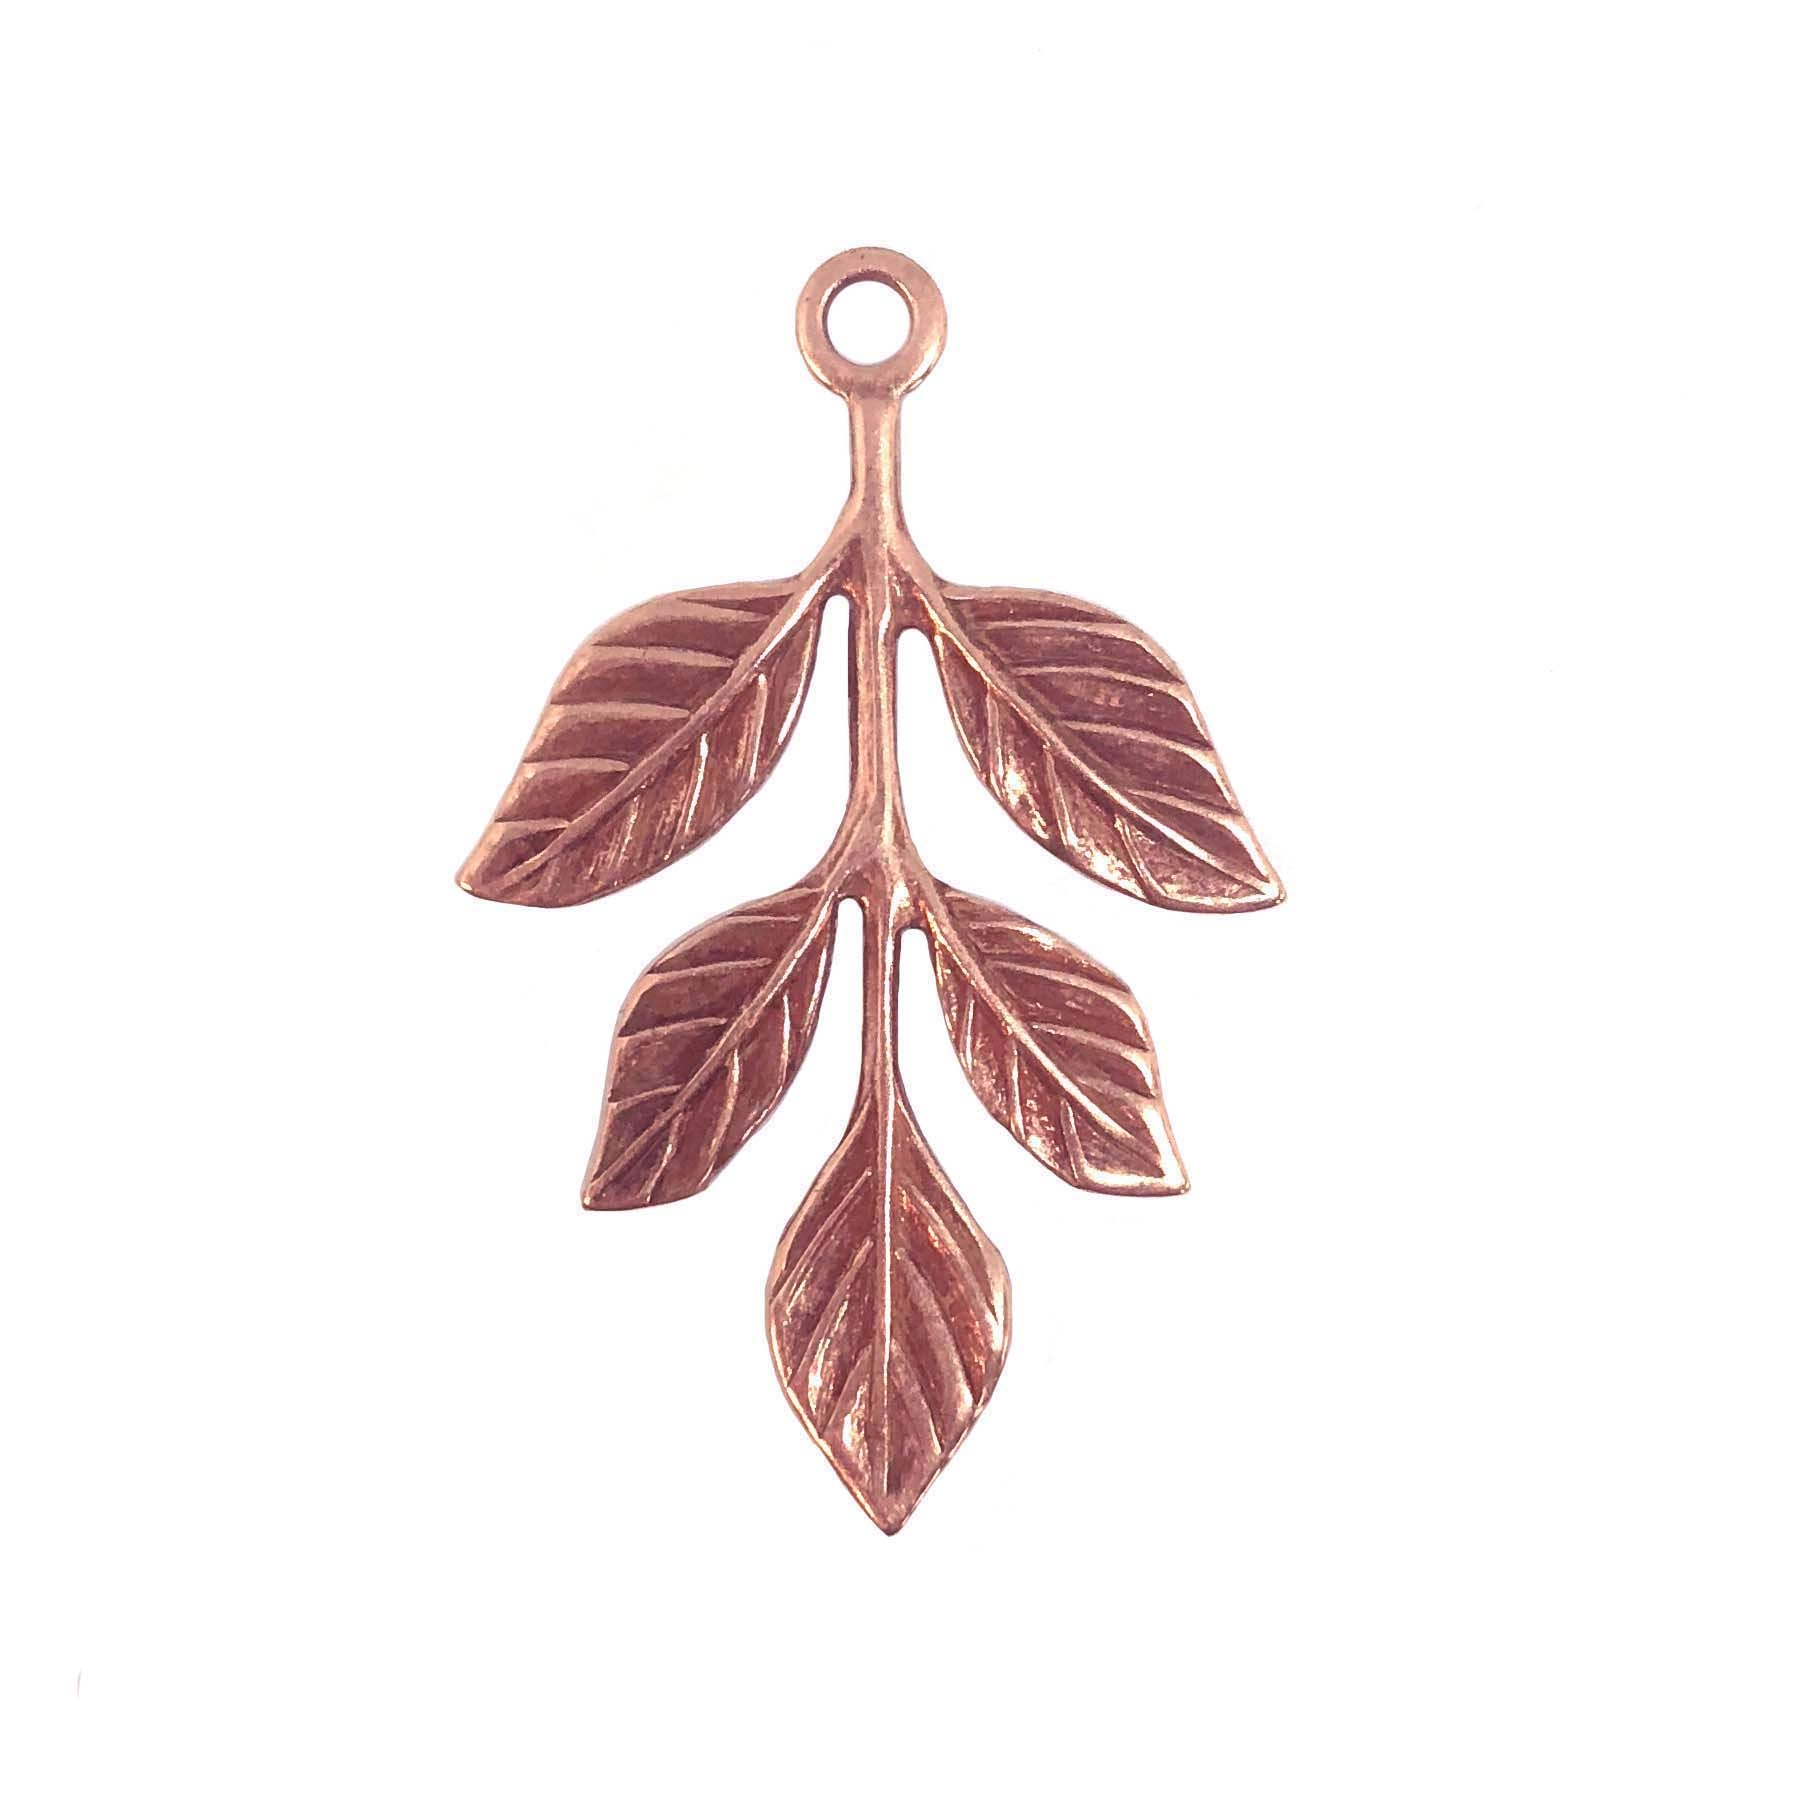 copper ox leaves, leaf, 04245, brass leaves, leaves, bsue boutiques, jewelry making, jewelry supplies, vintage, vintage stamping, stamping, leaf stamping, copper ox, charm, pendant, leaf pendant, leaf charm